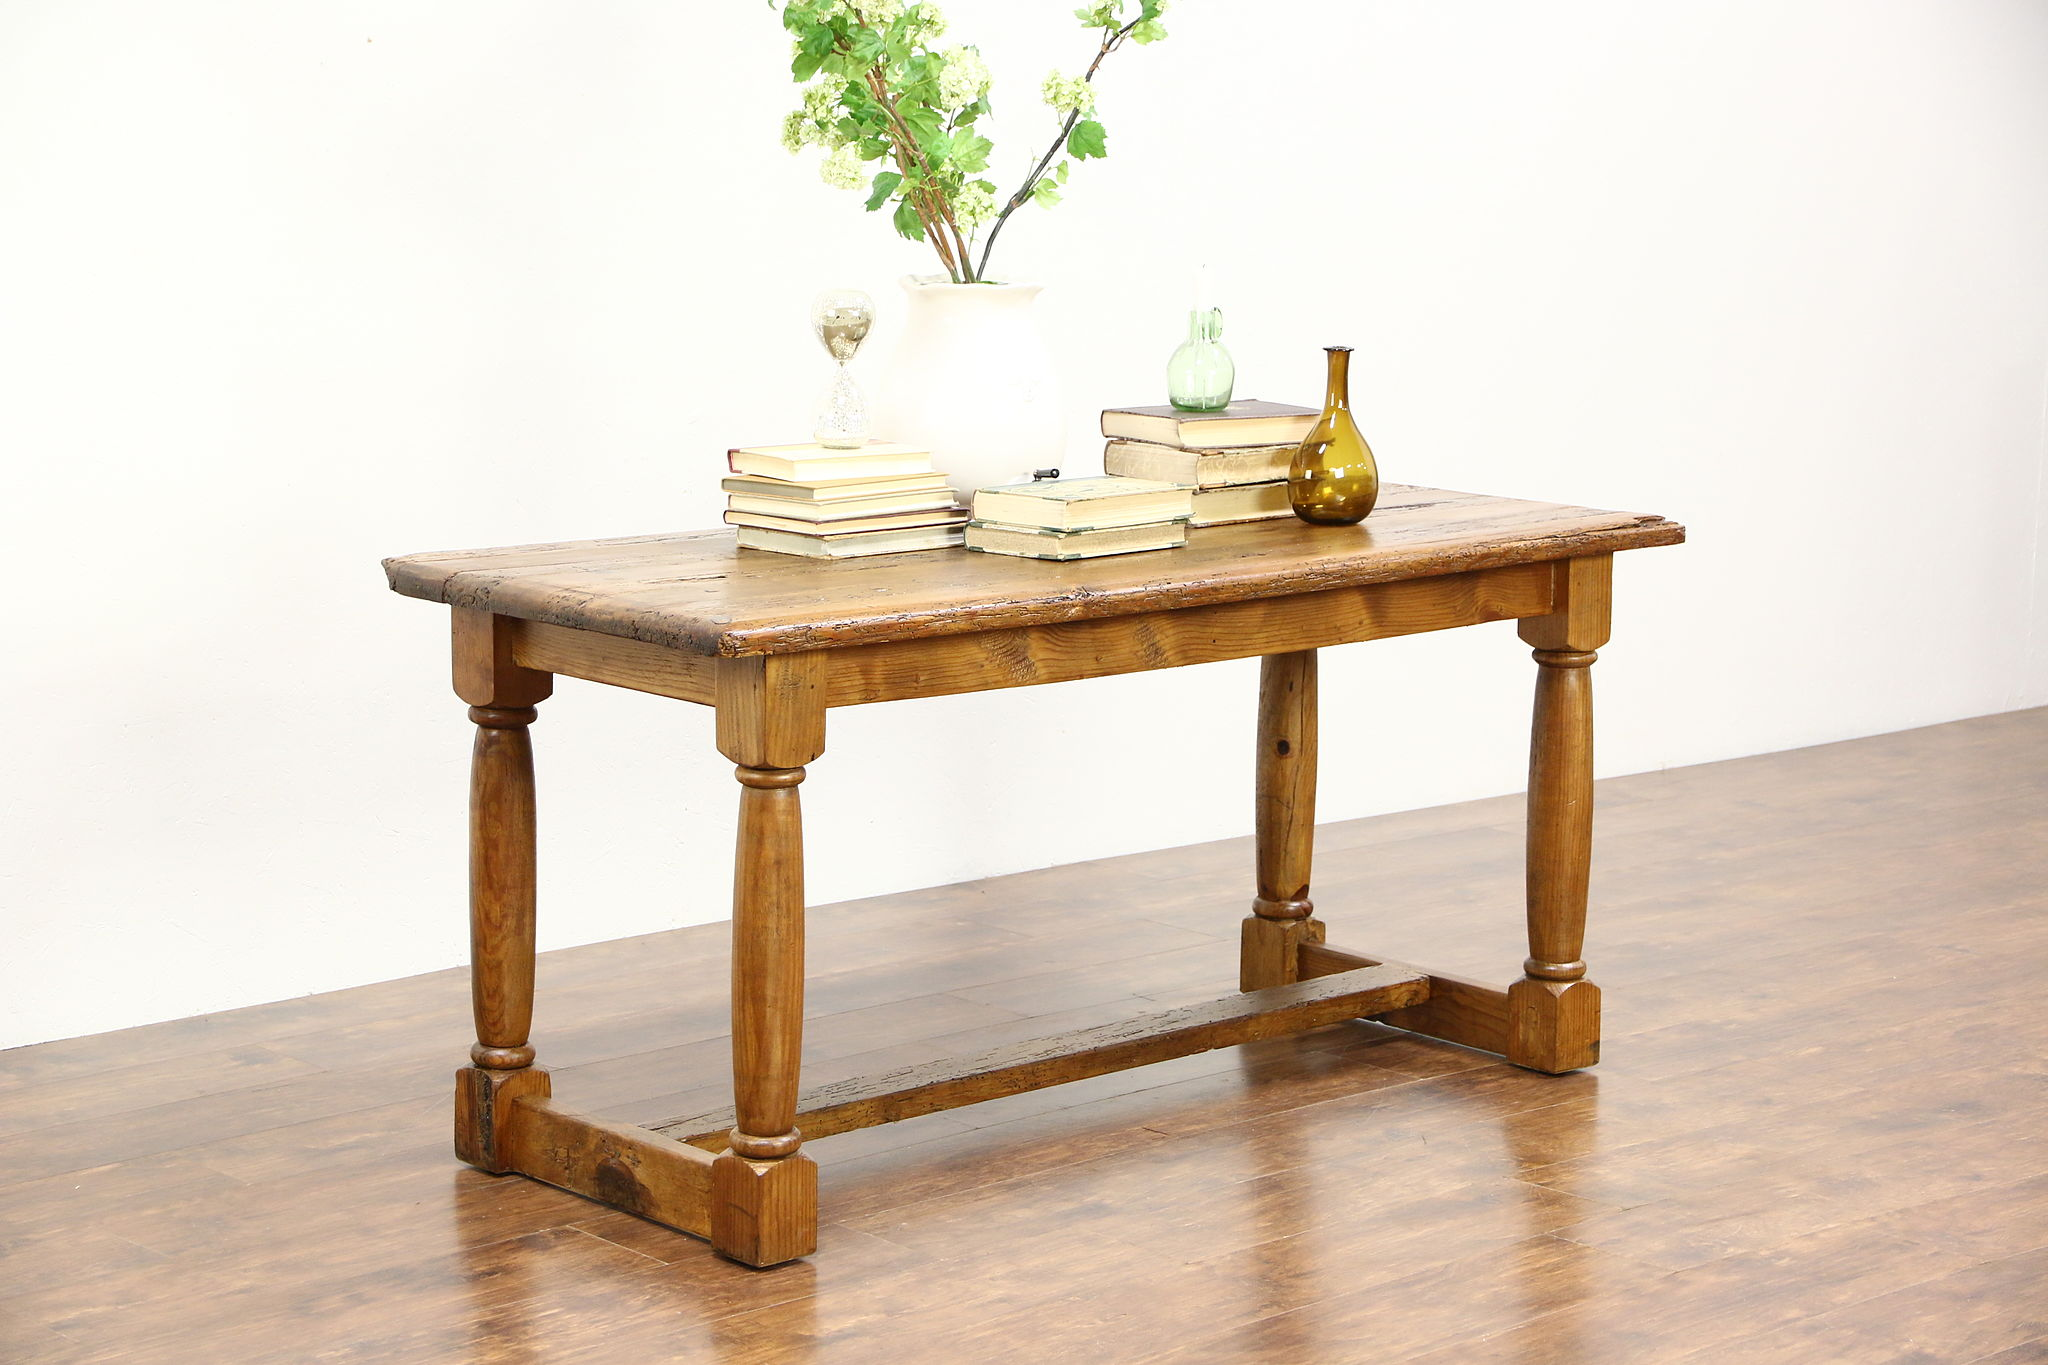 Rustic French Country Pine Trestle Dining Console or Kitchen